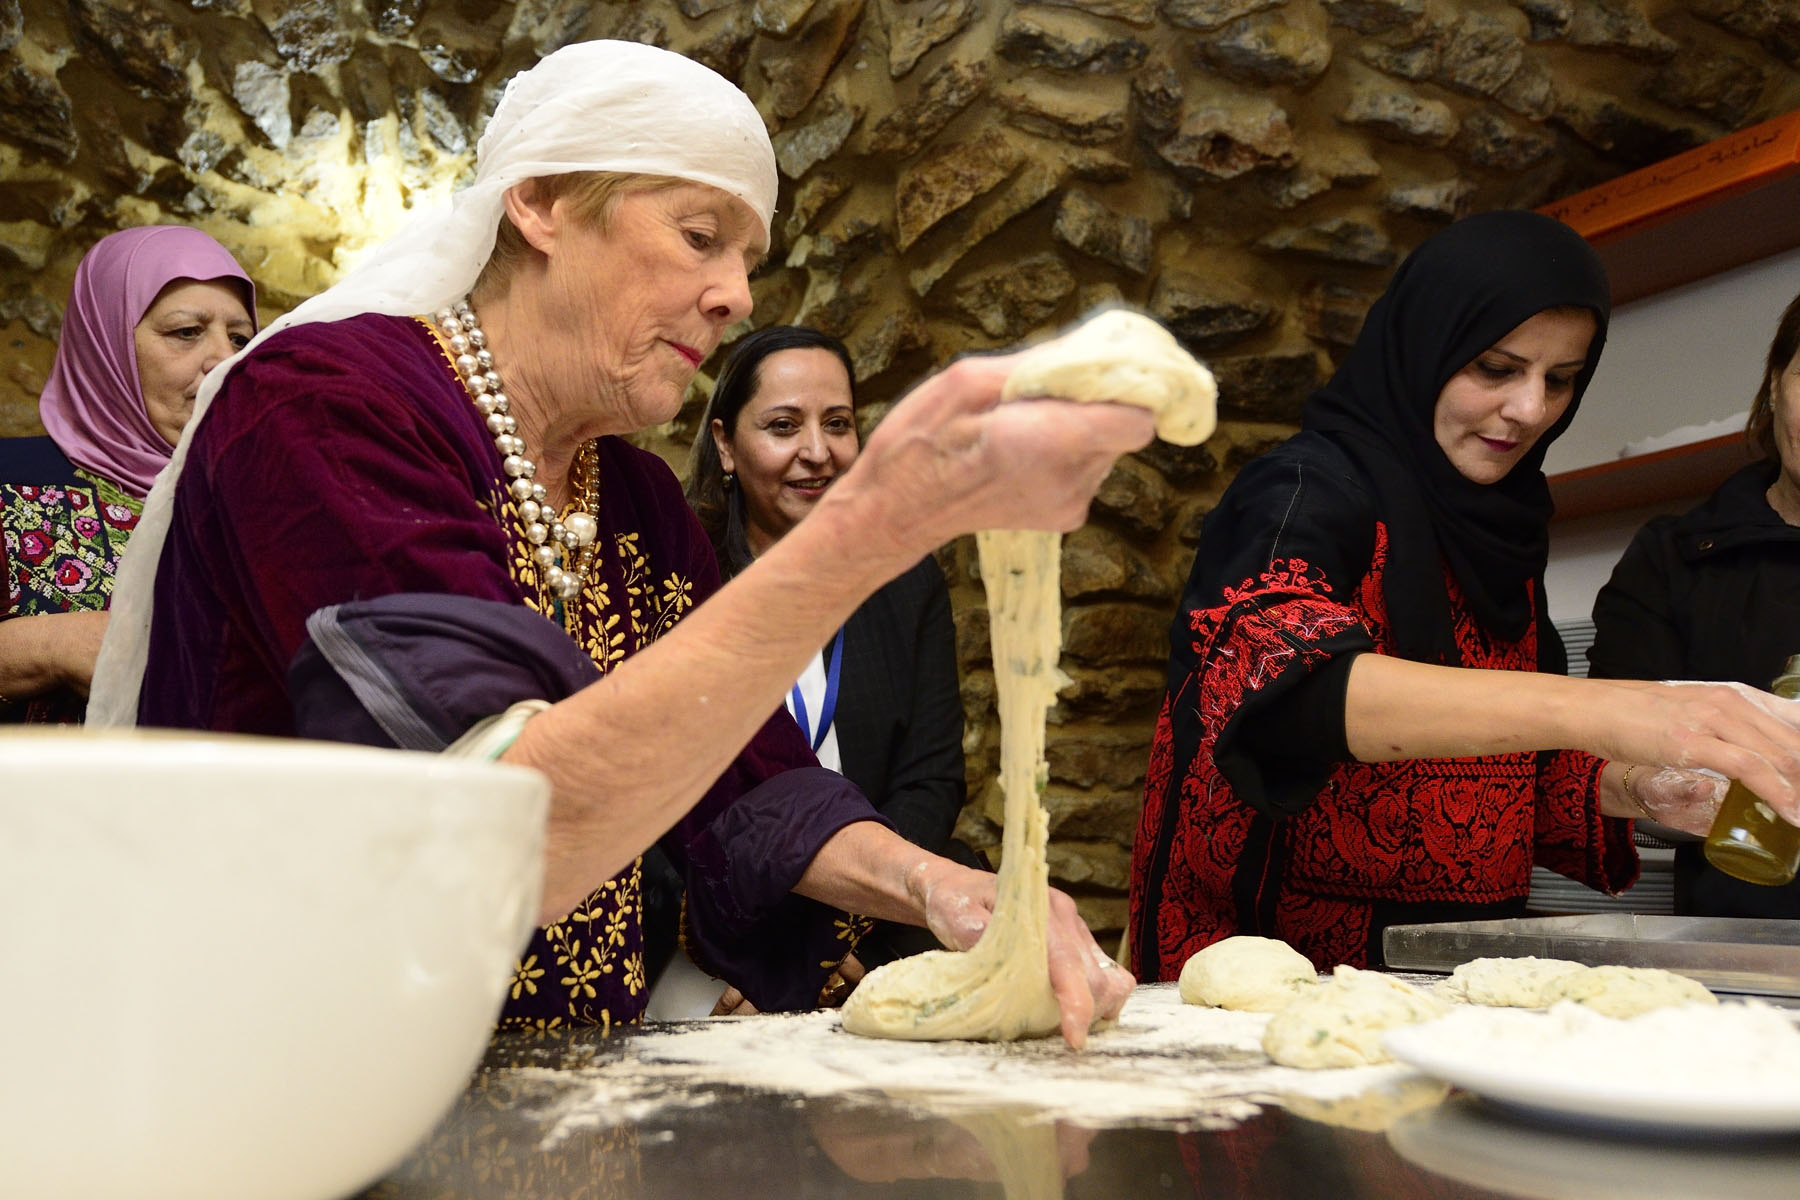 Her Excellency gave a helping hand and made Palestinian bread.